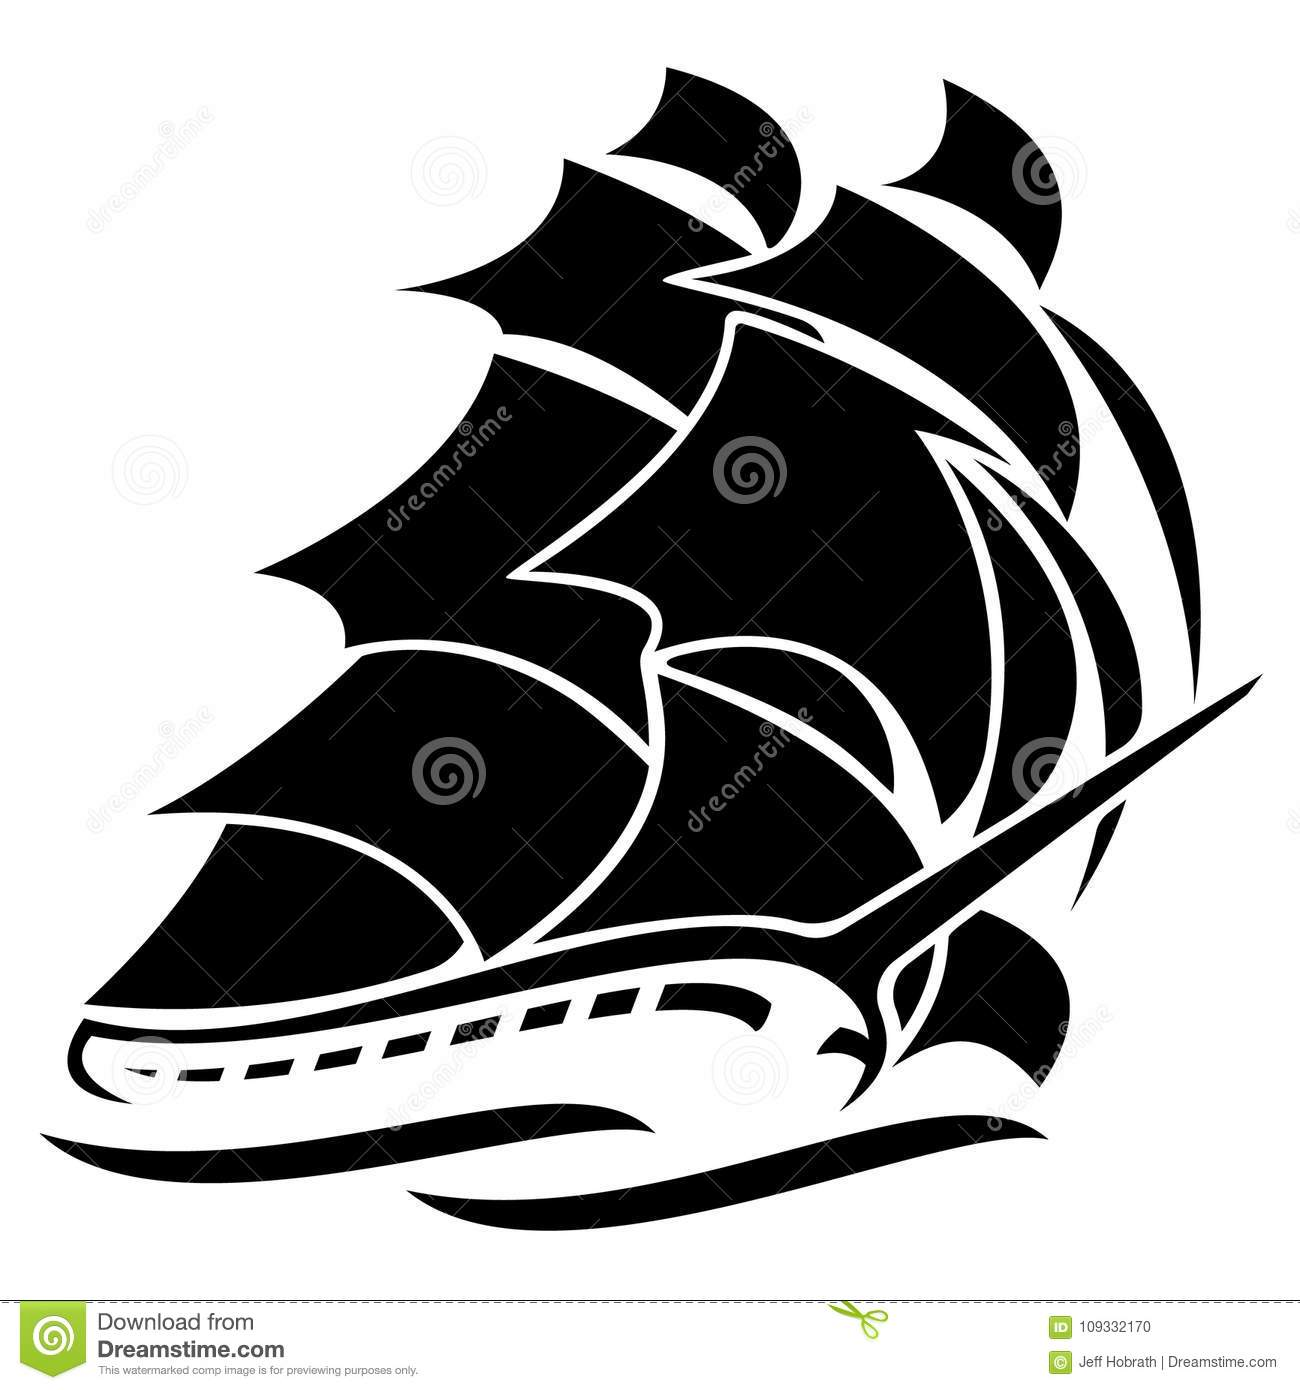 Drawing Vector Lines In Photo : Old tall sailing ship vector graphic illustration stock